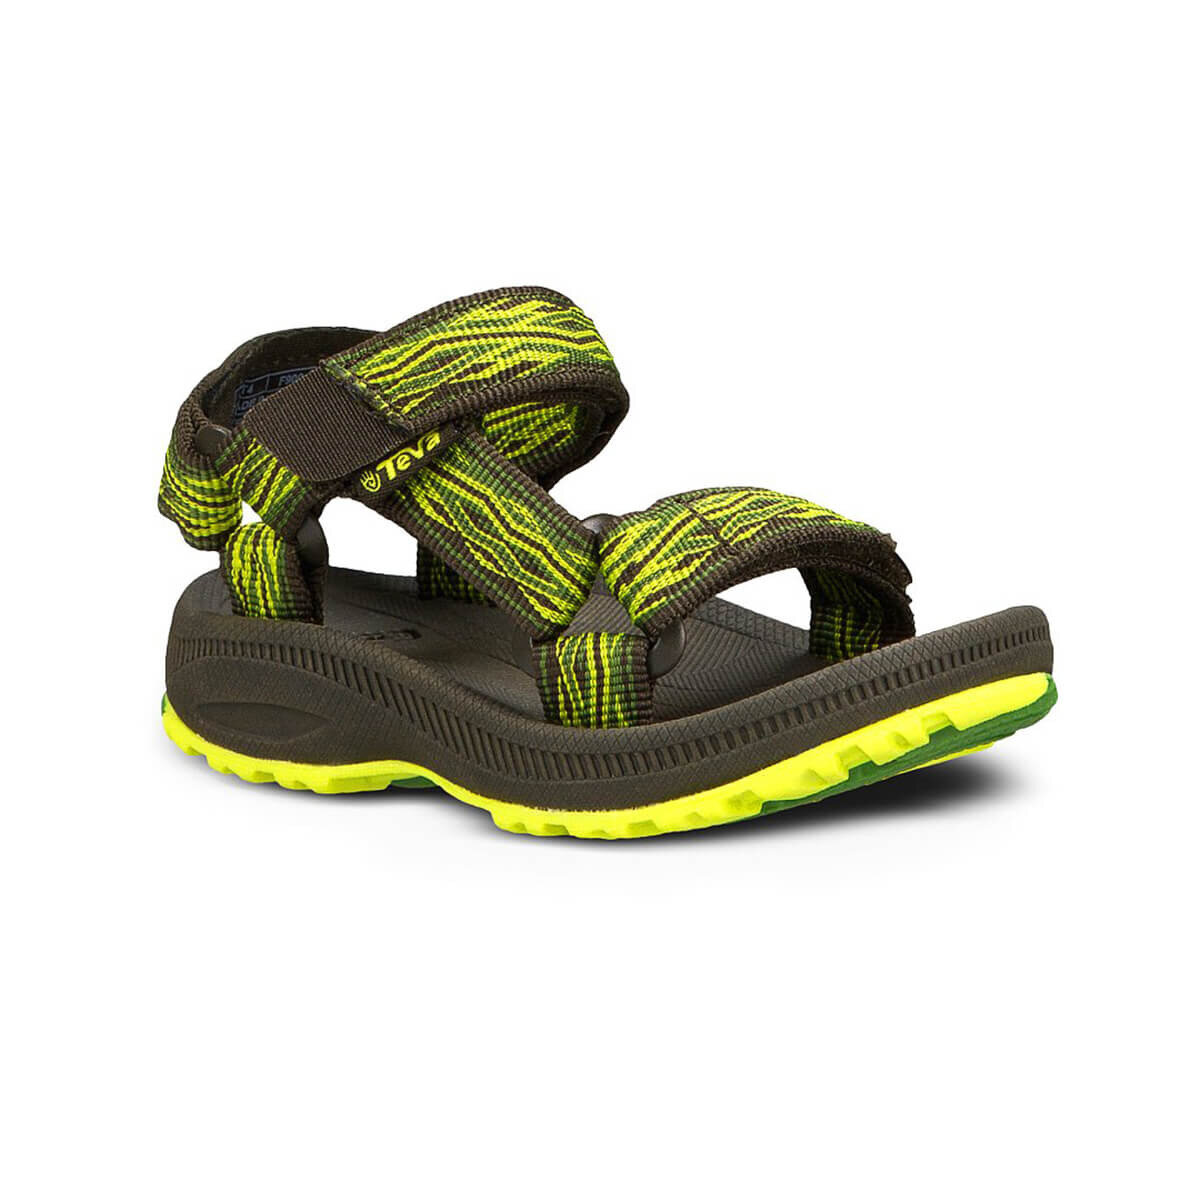 FLO HURRICANE 2 BABY SANDALE Green Unisex Children Sandals Teva